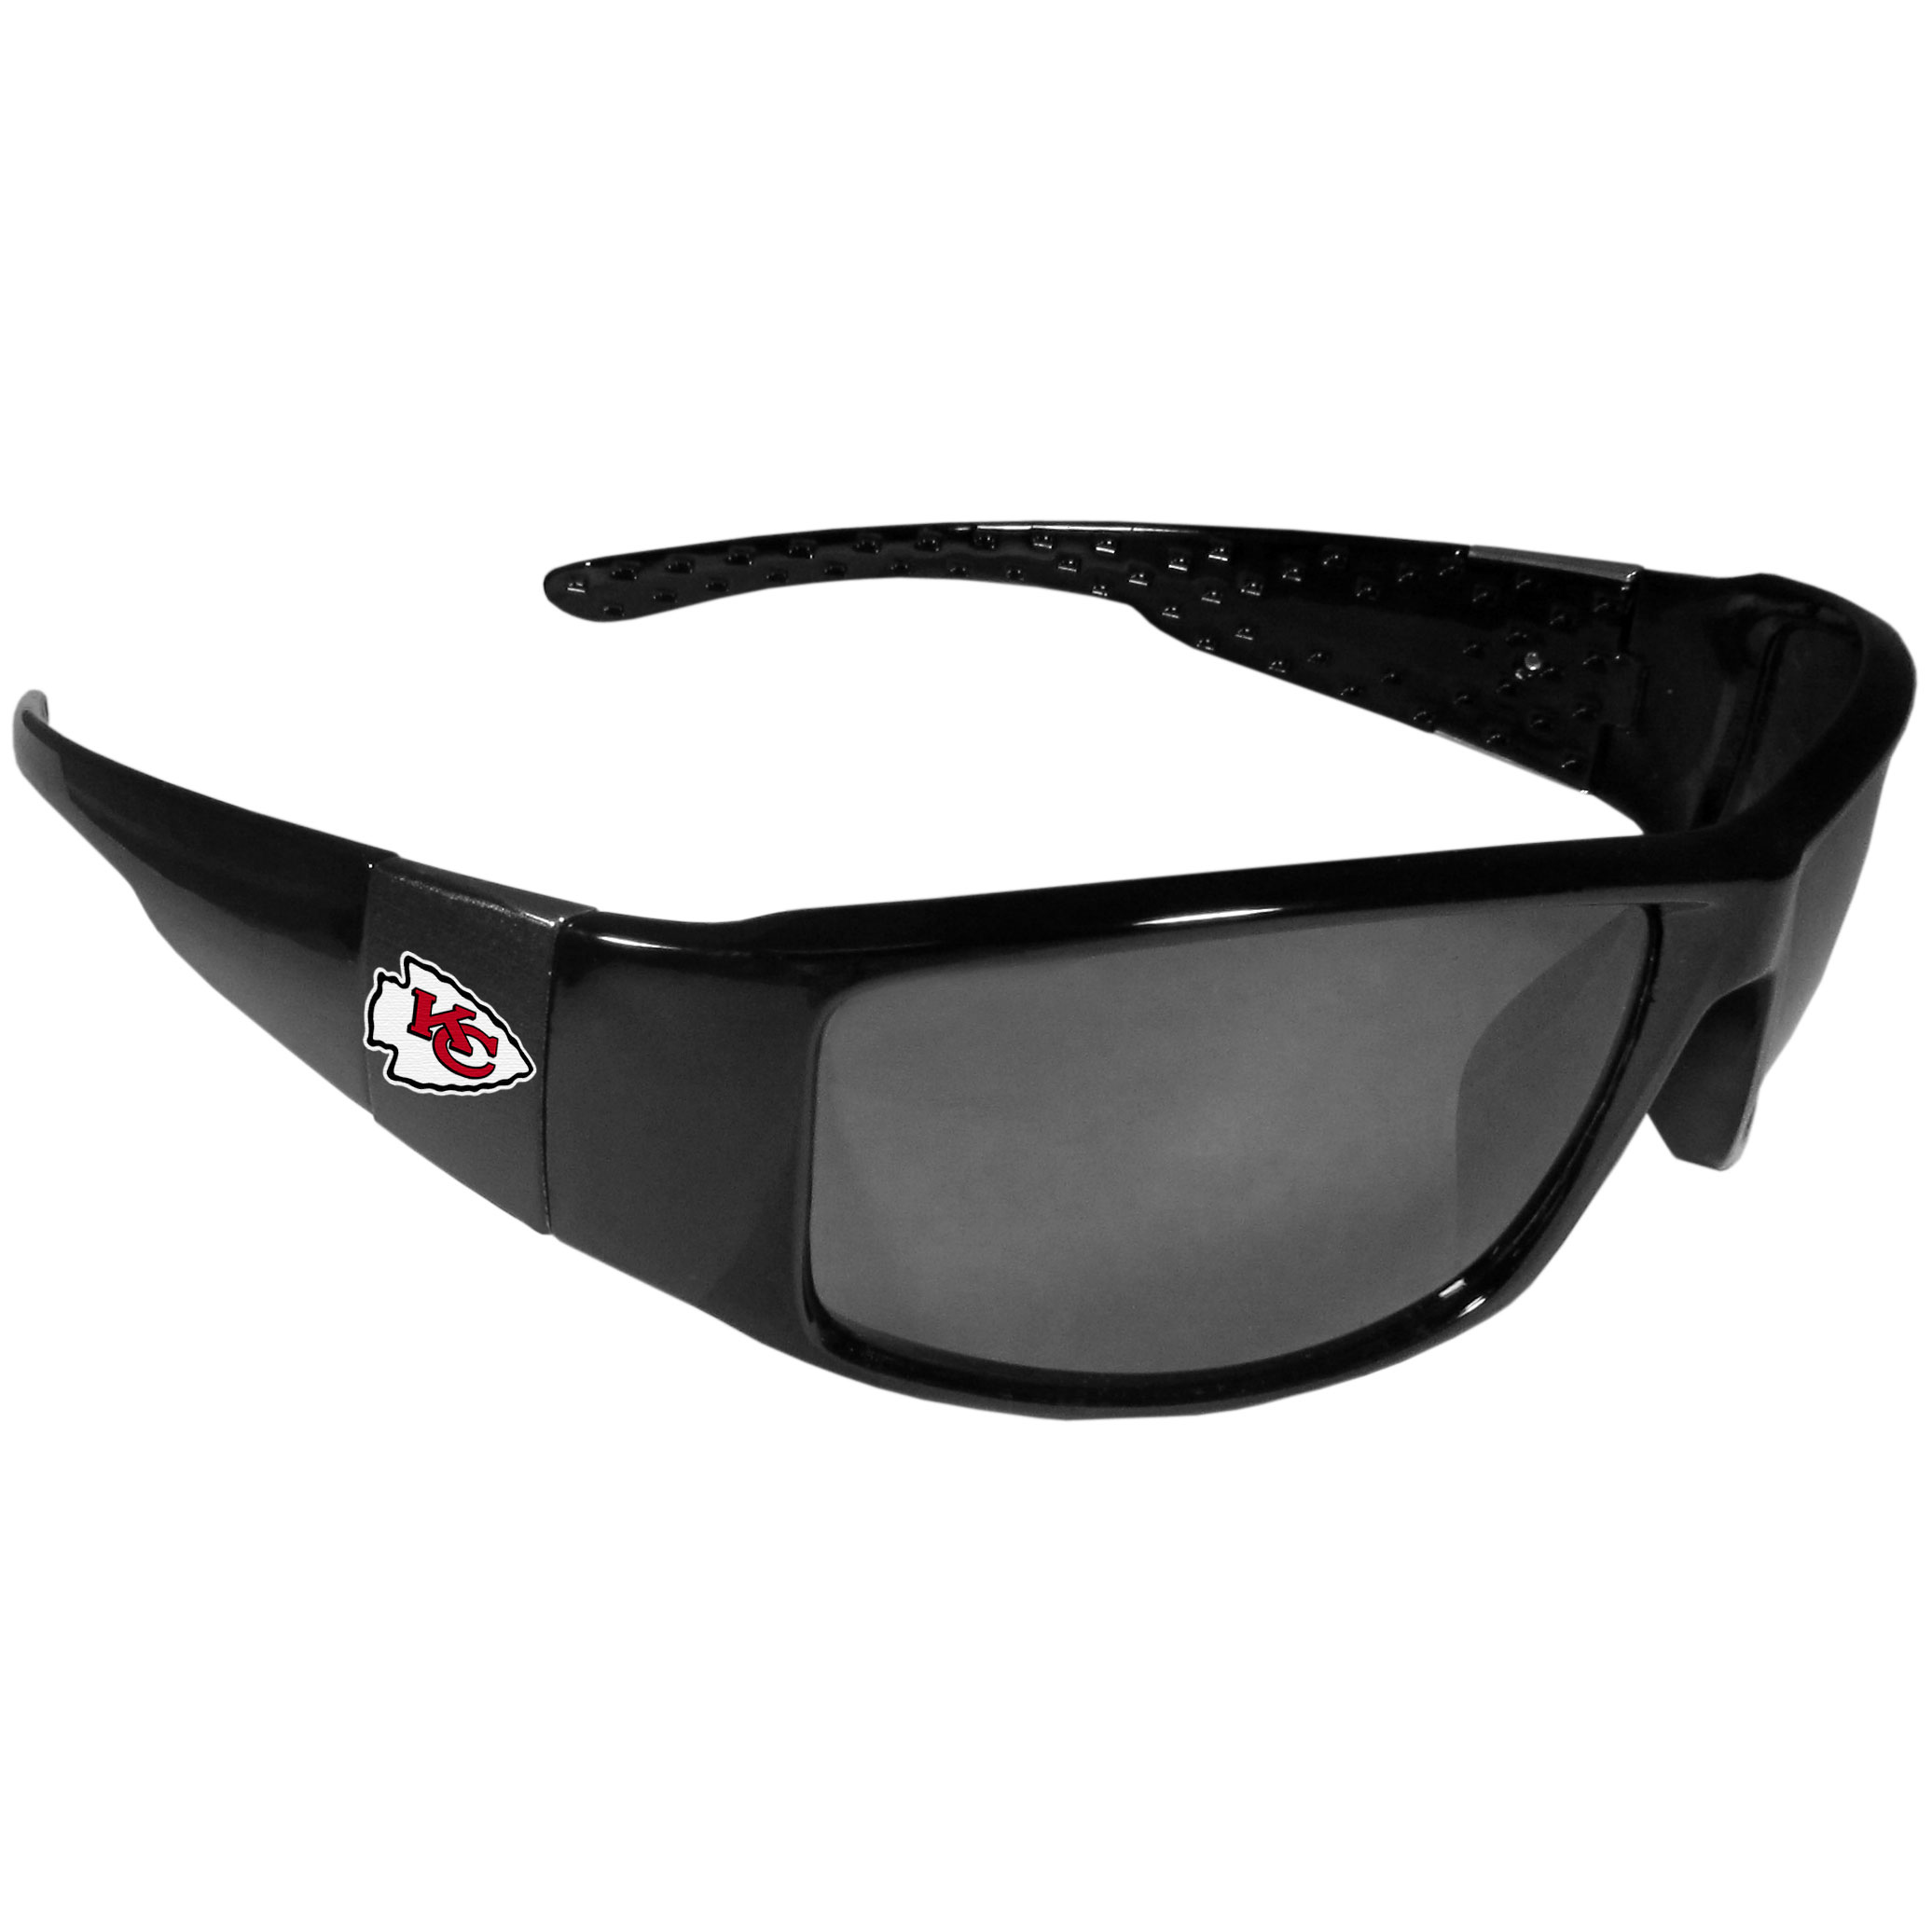 Kansas City Chiefs Black Wrap Sunglasses - These designer inspired frames have a sleek look in all black with  Kansas City Chiefs shields on each arm with a printed logo. The shades are perfect for any outdoor activity like; golfing, driving, hiking, fishing or cheering on the team at a tailgating event or at a home game day BBQ with a lens rating of 100% UVA/UVB for maximum UV protection. The high-quality frames are as durable as they are fashionable and with their classic look they are the perfect fan accessory that can be worn everyday for every occasion.